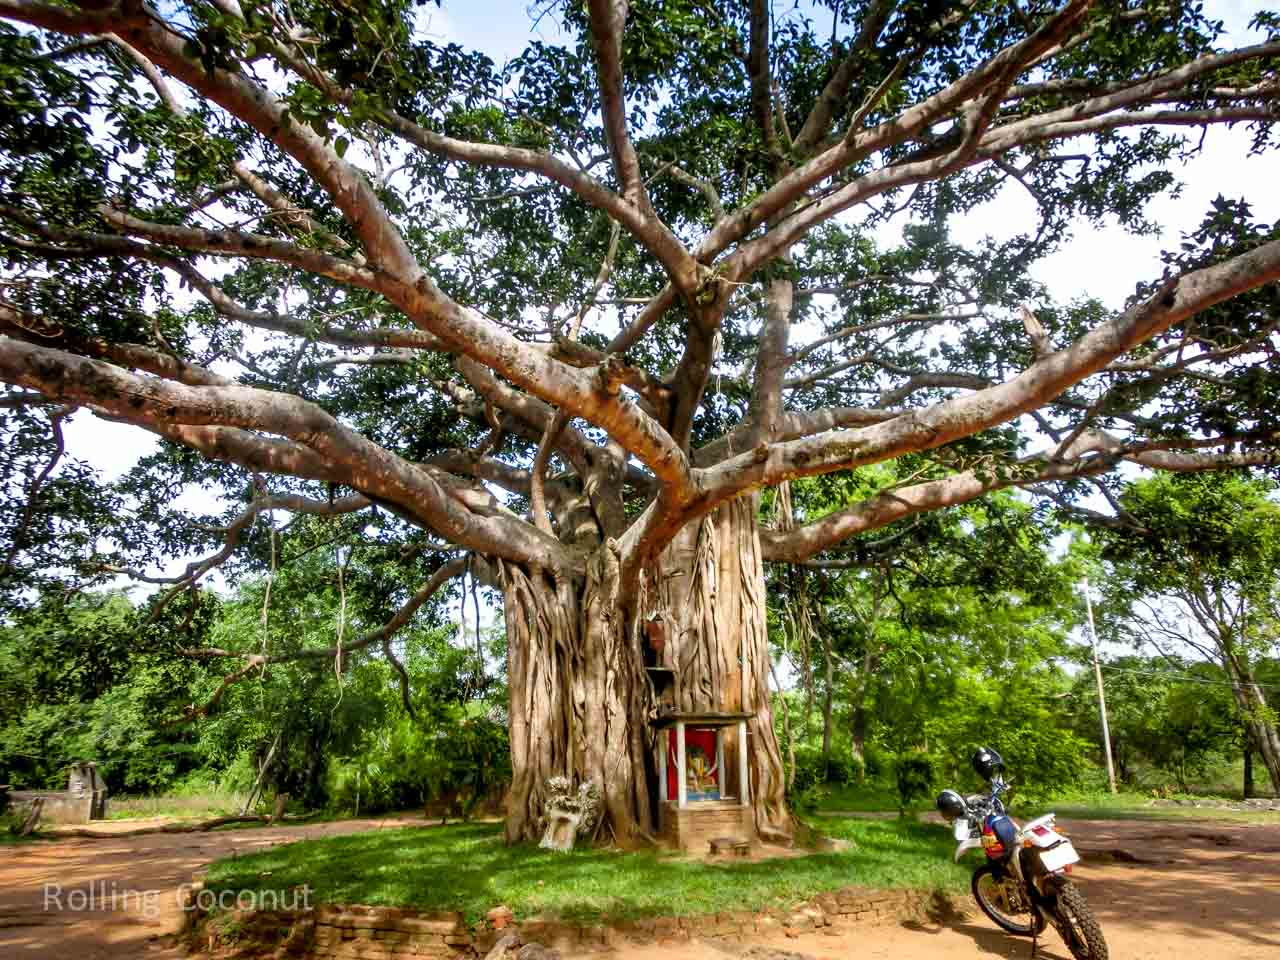 Sigiriya Sri Lanka itinerary Bodhi Tree ooaworld Rolling Coconut Photo Ooaworld